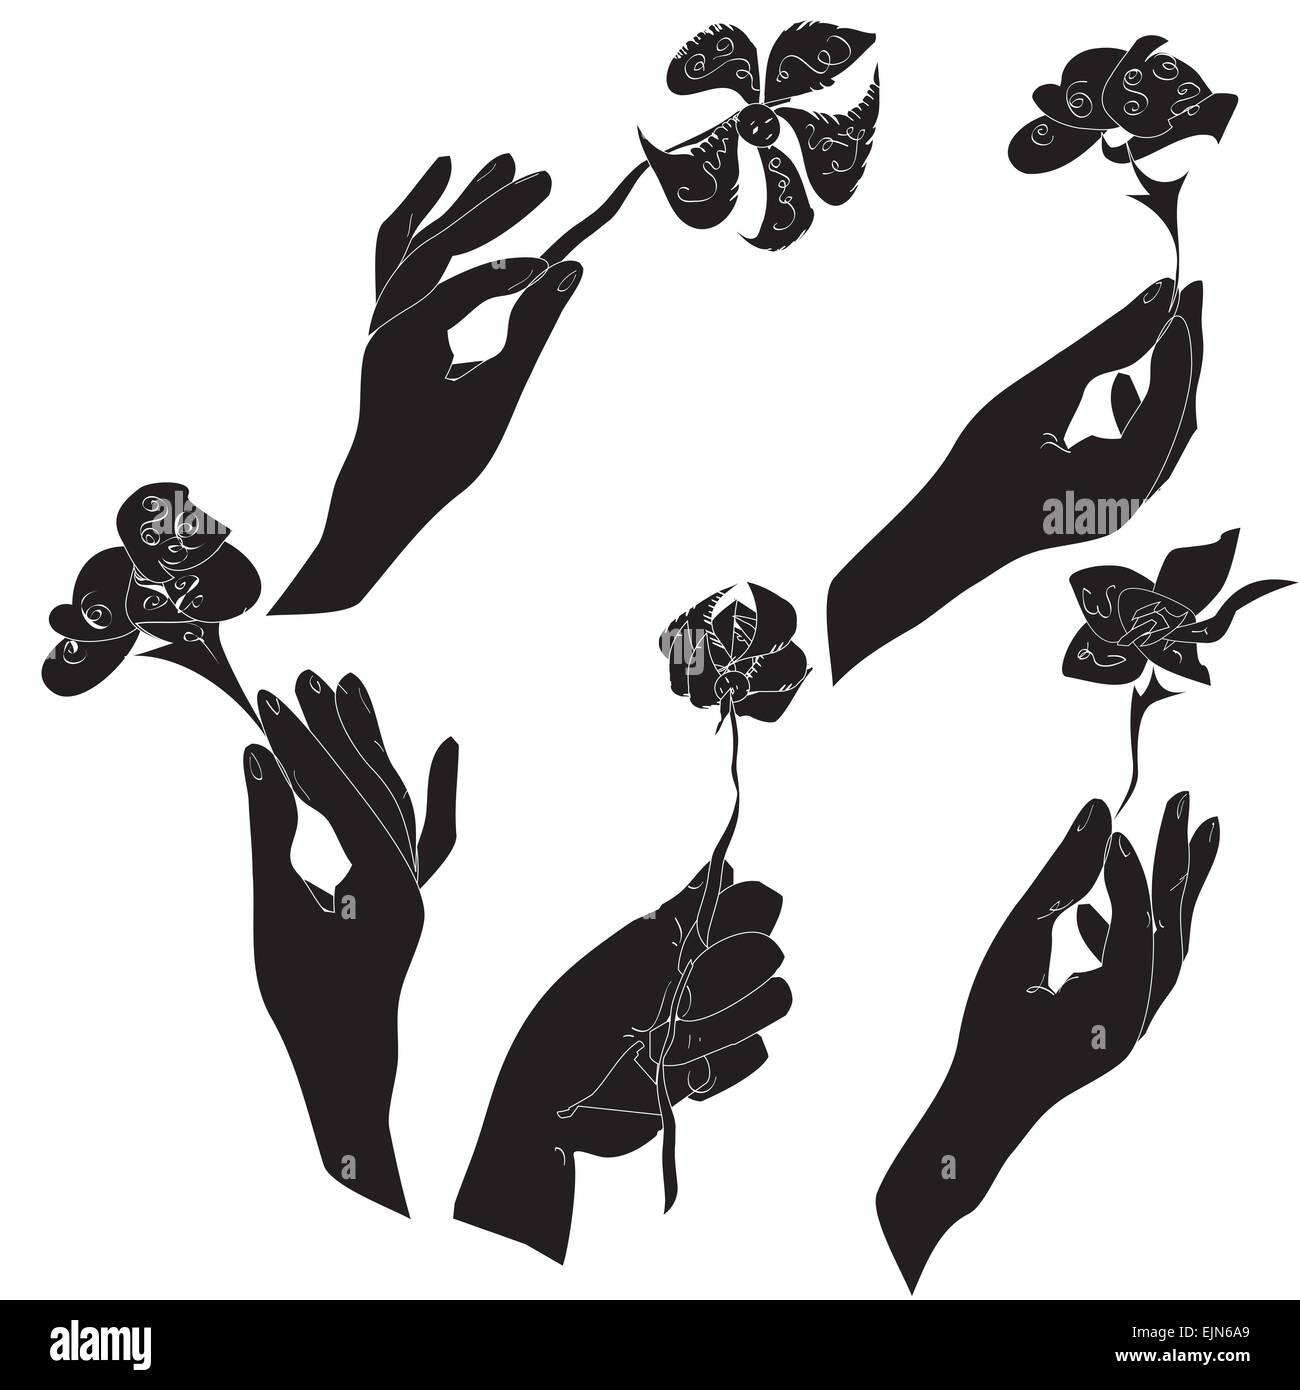 Hand Drawn Silhouettes Of The Human Hands Holding Flowers In Black